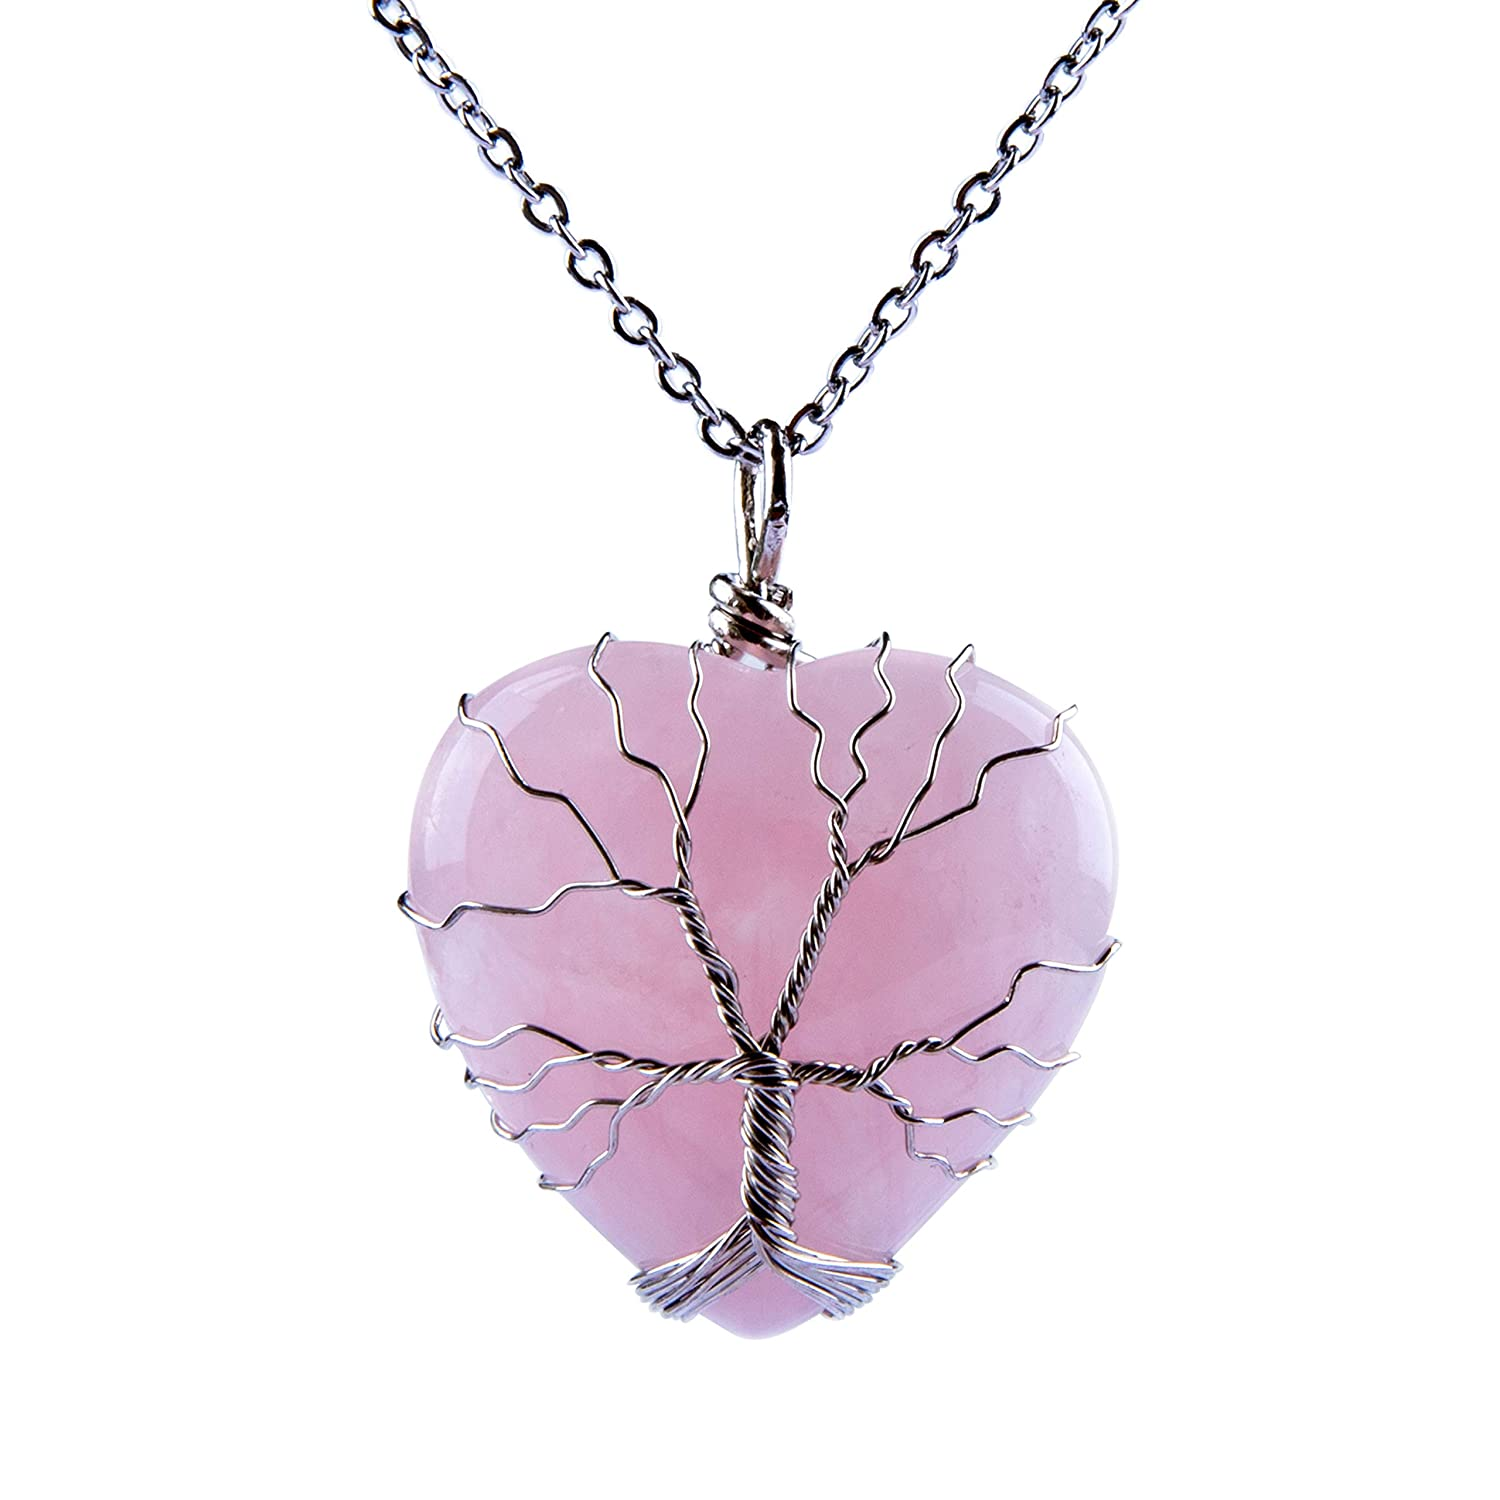 Bivei Tree of Life Wire Wrap Love Heart Chakra Rose Quartz Amethyst Gemstone Crystal Pendant Necklace anbivi1112219